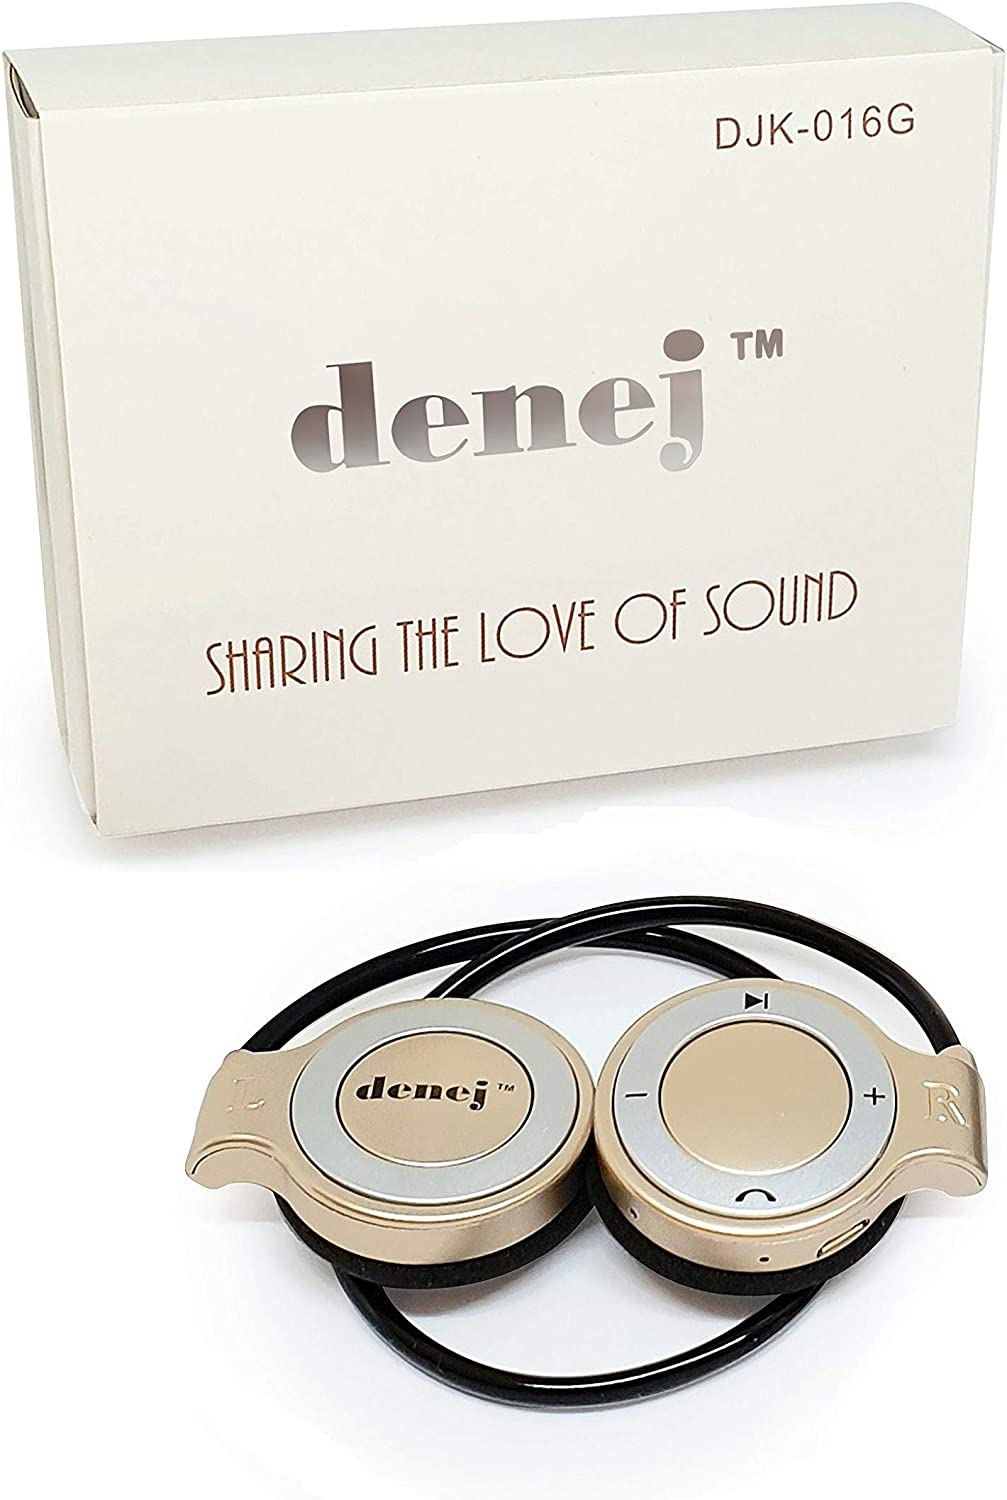 Denej Gold Mini On Ear Bluetooth Wireless Headphones Gift Set - 20 Hr On-Ear Cordless Headset Set for Gym,Running,Workout, Leisure with Built-in Microphone and Crisp HD Audio. with Bonus Pouch.